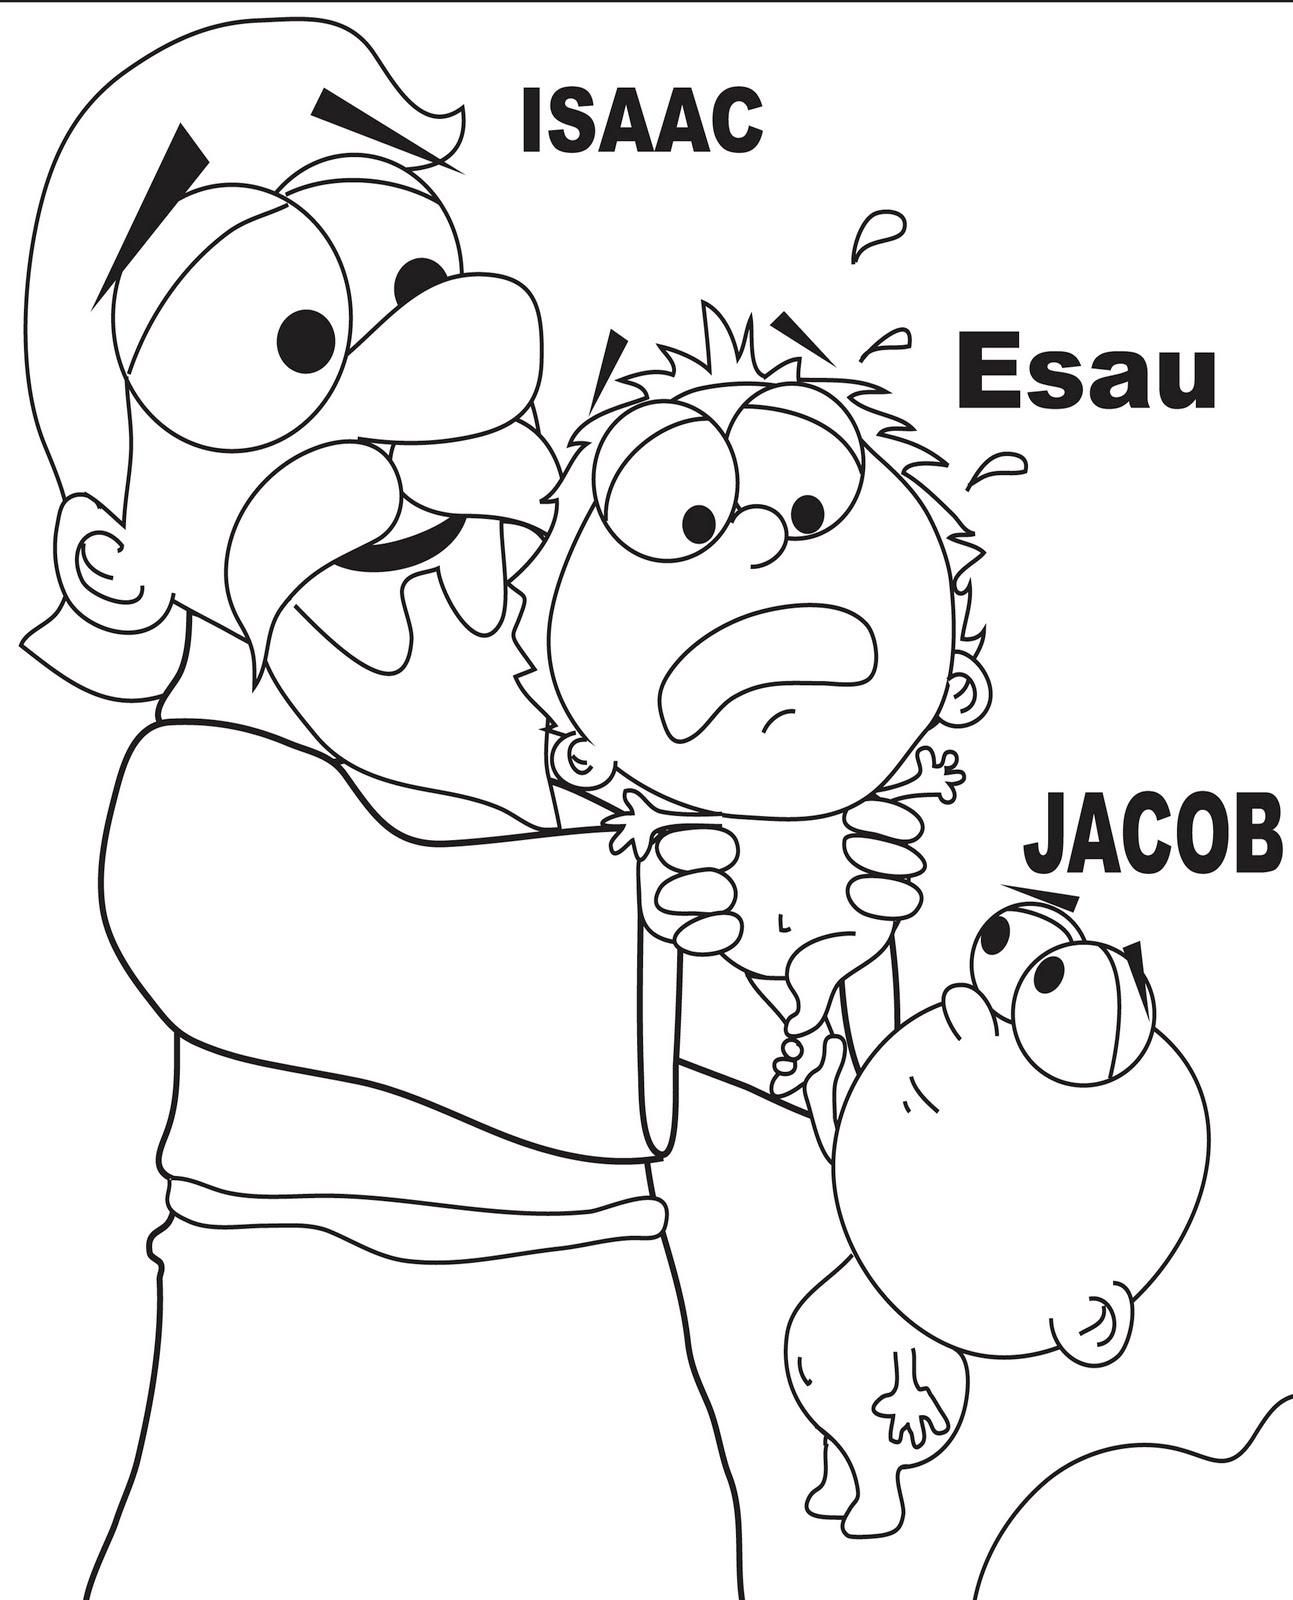 sunday school coloring pages jacob and esau 1 Sunday School